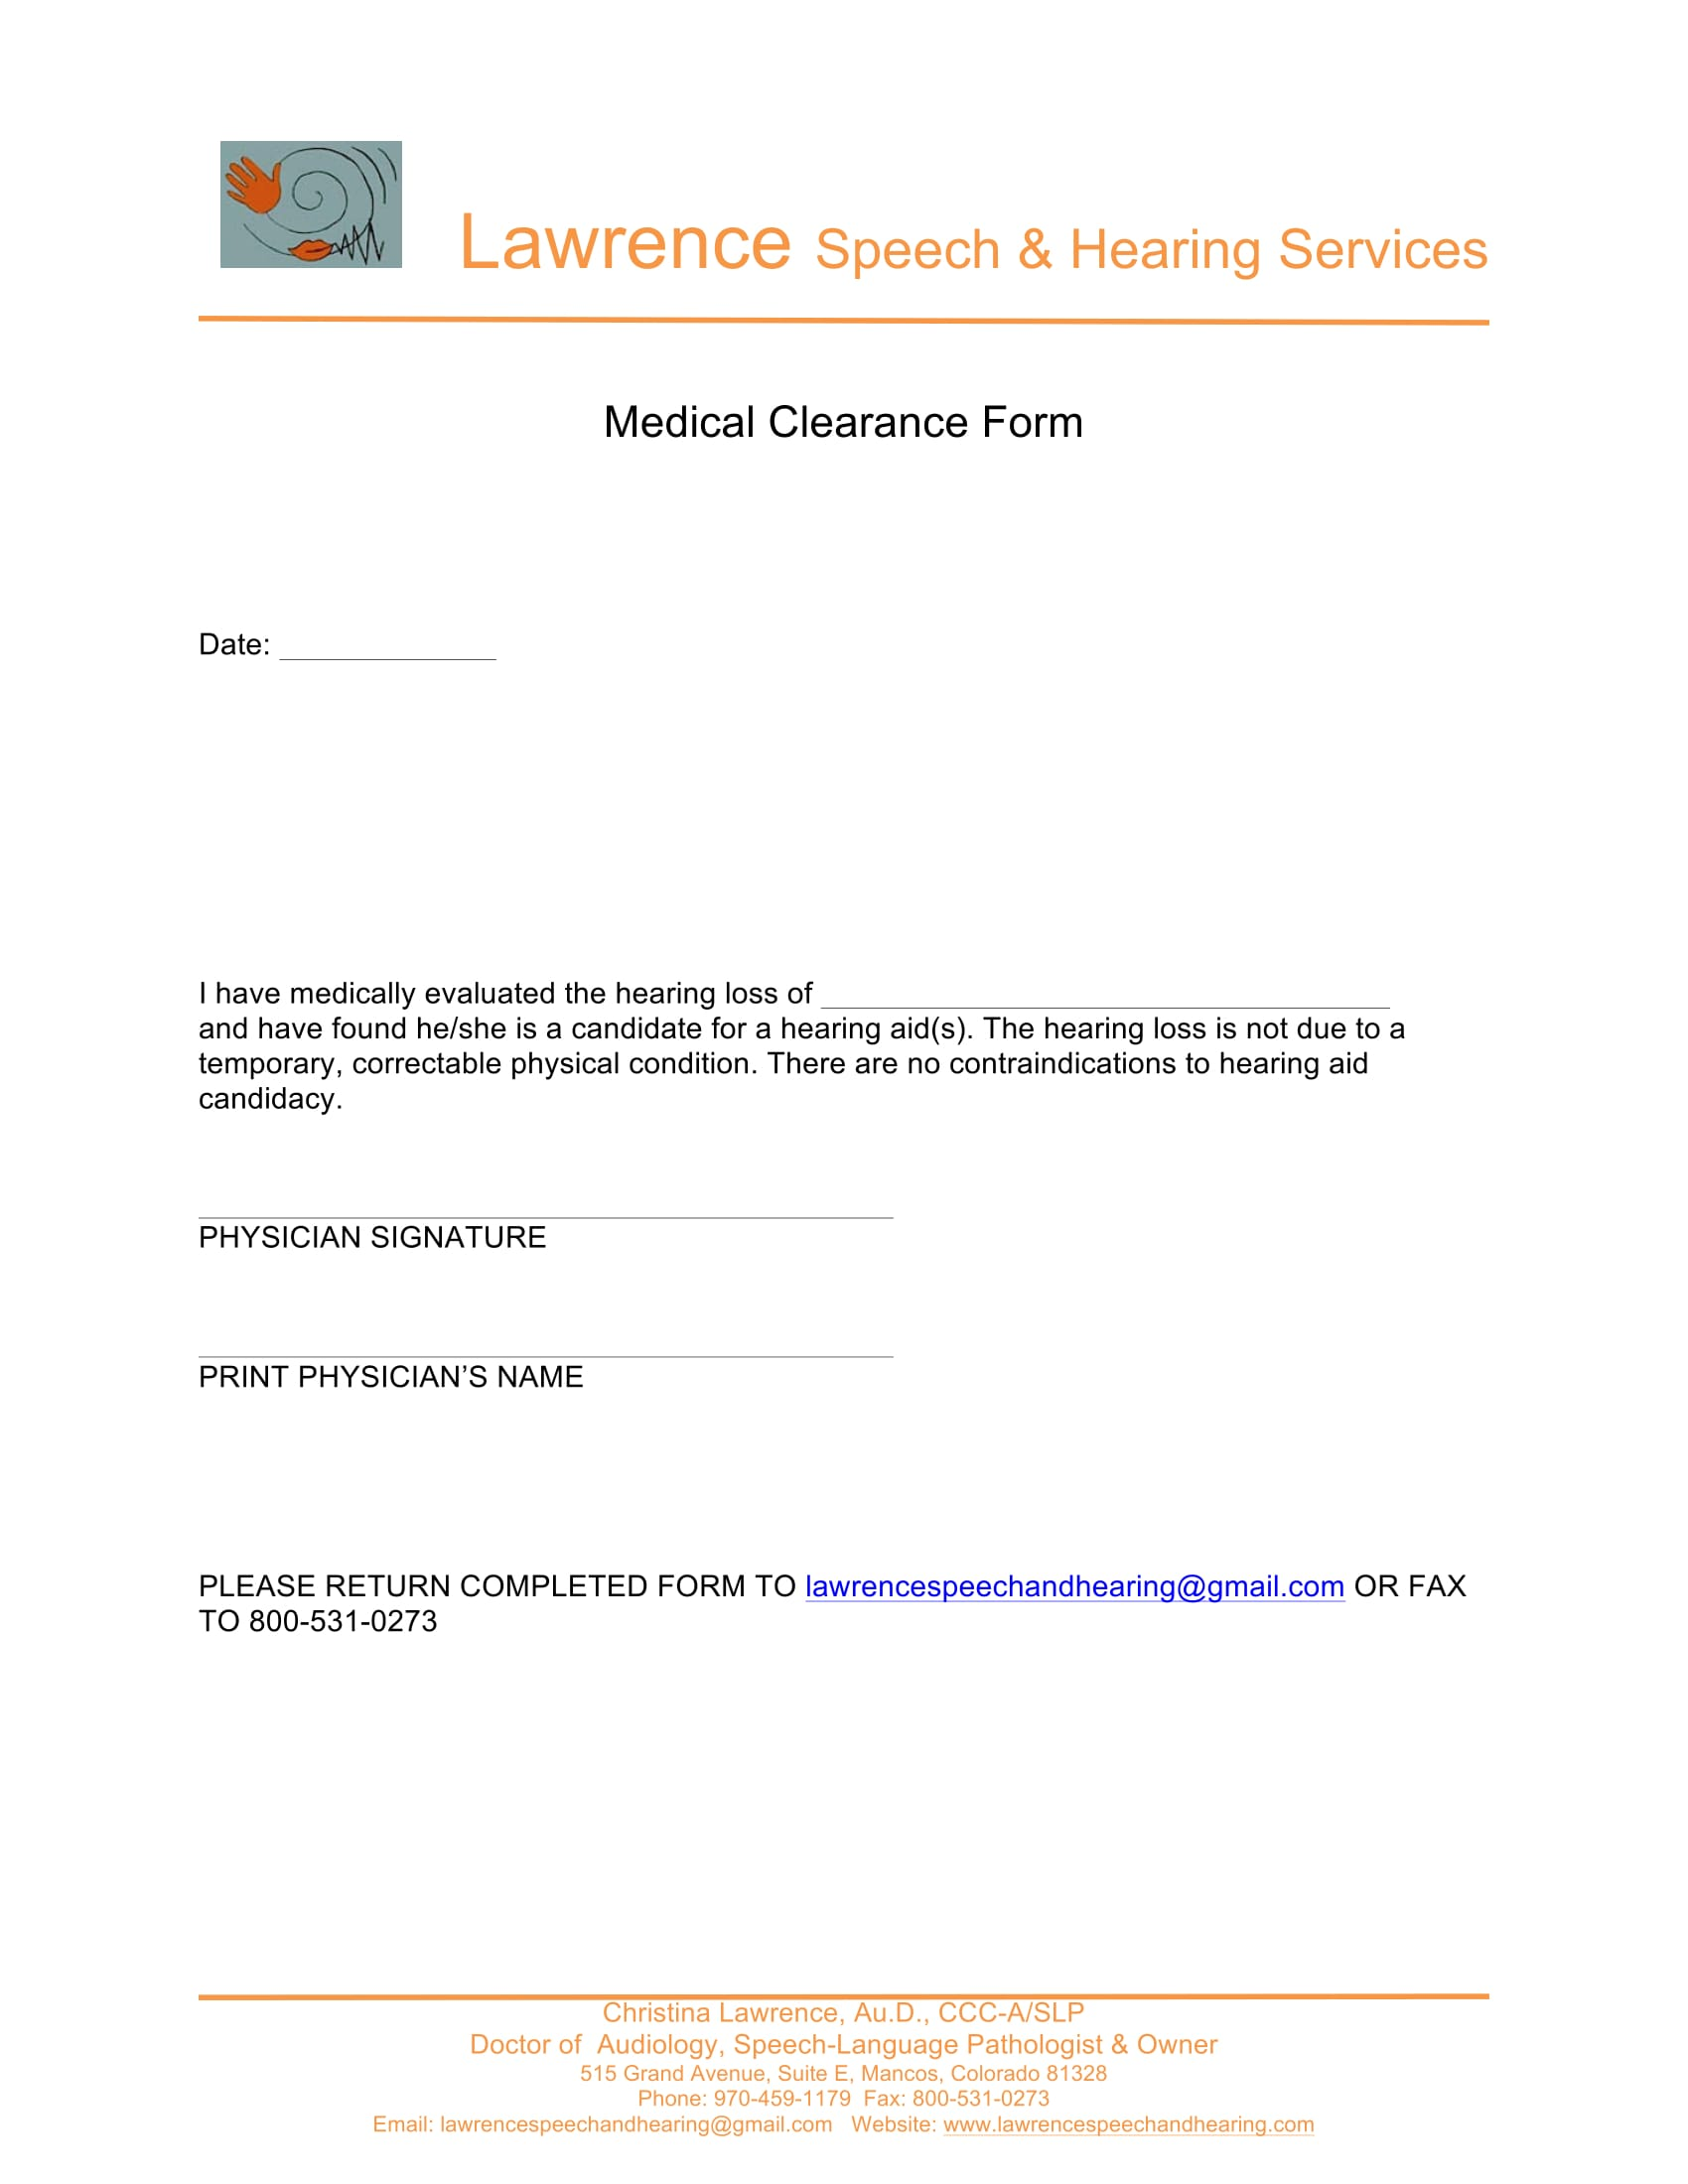 hearing service medical clearance form 2